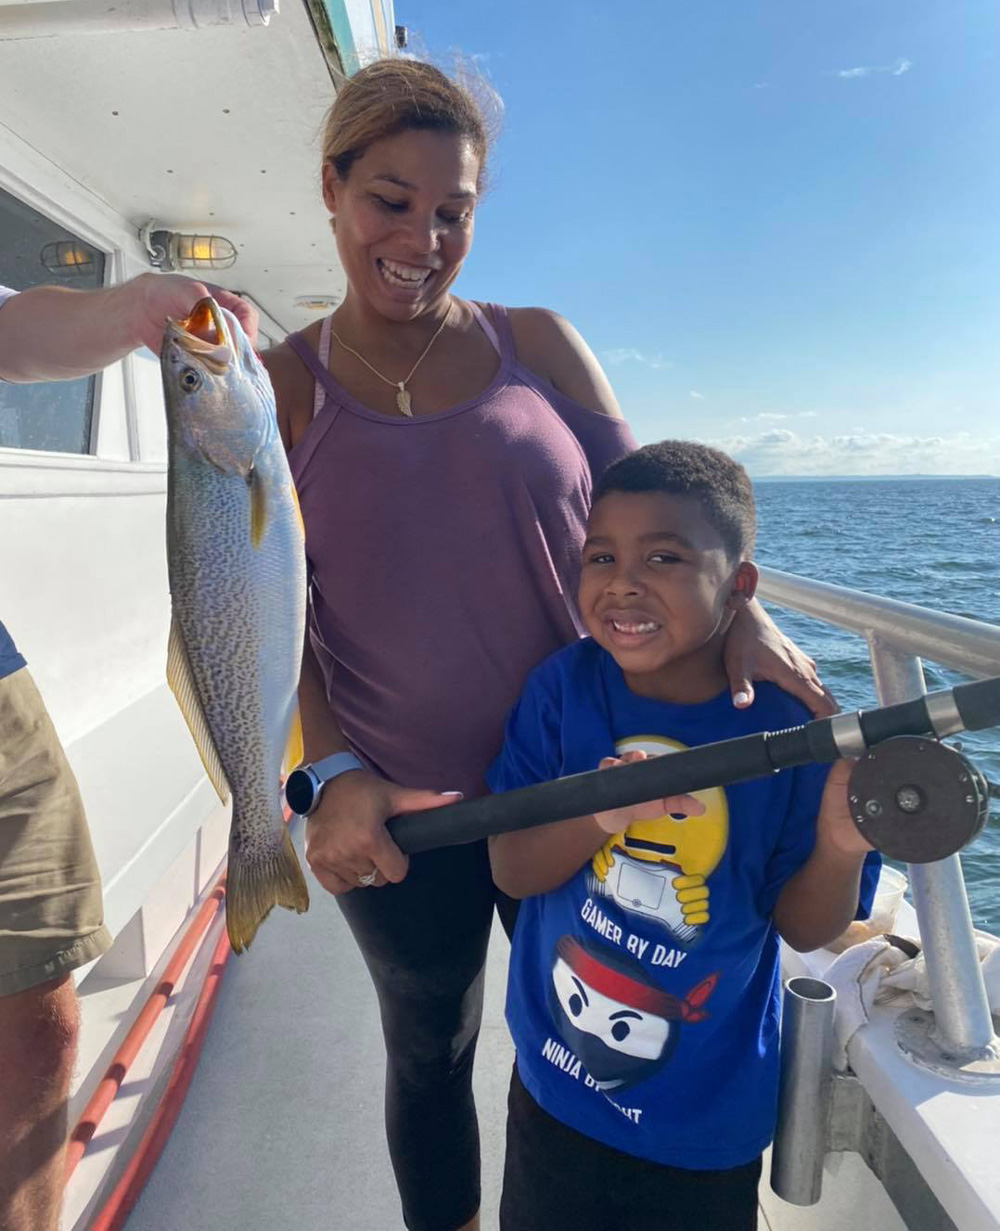 Carter and his mom weakfish